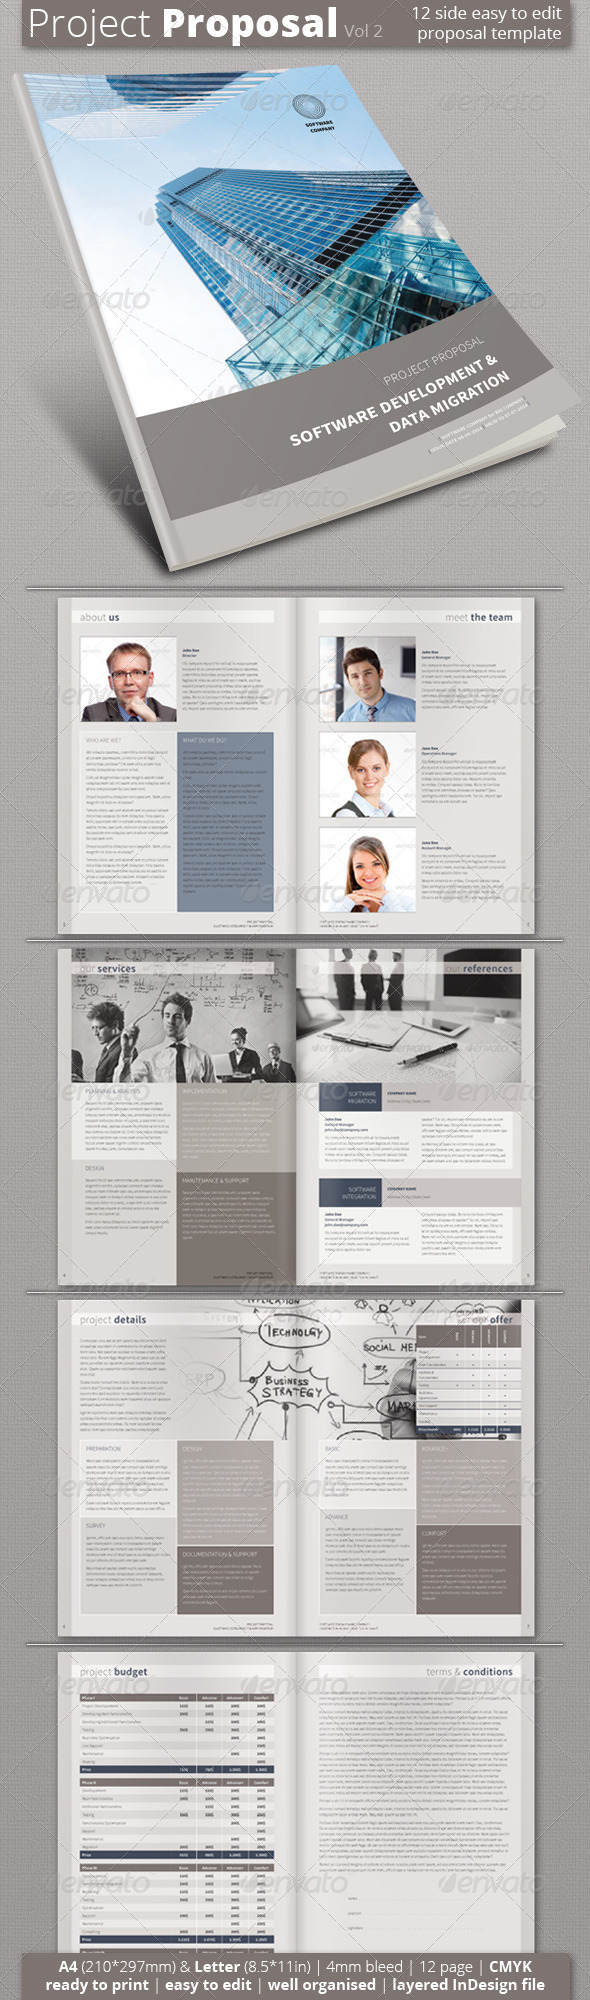 GraphicRiver Project Proposal Vol 2 7974195